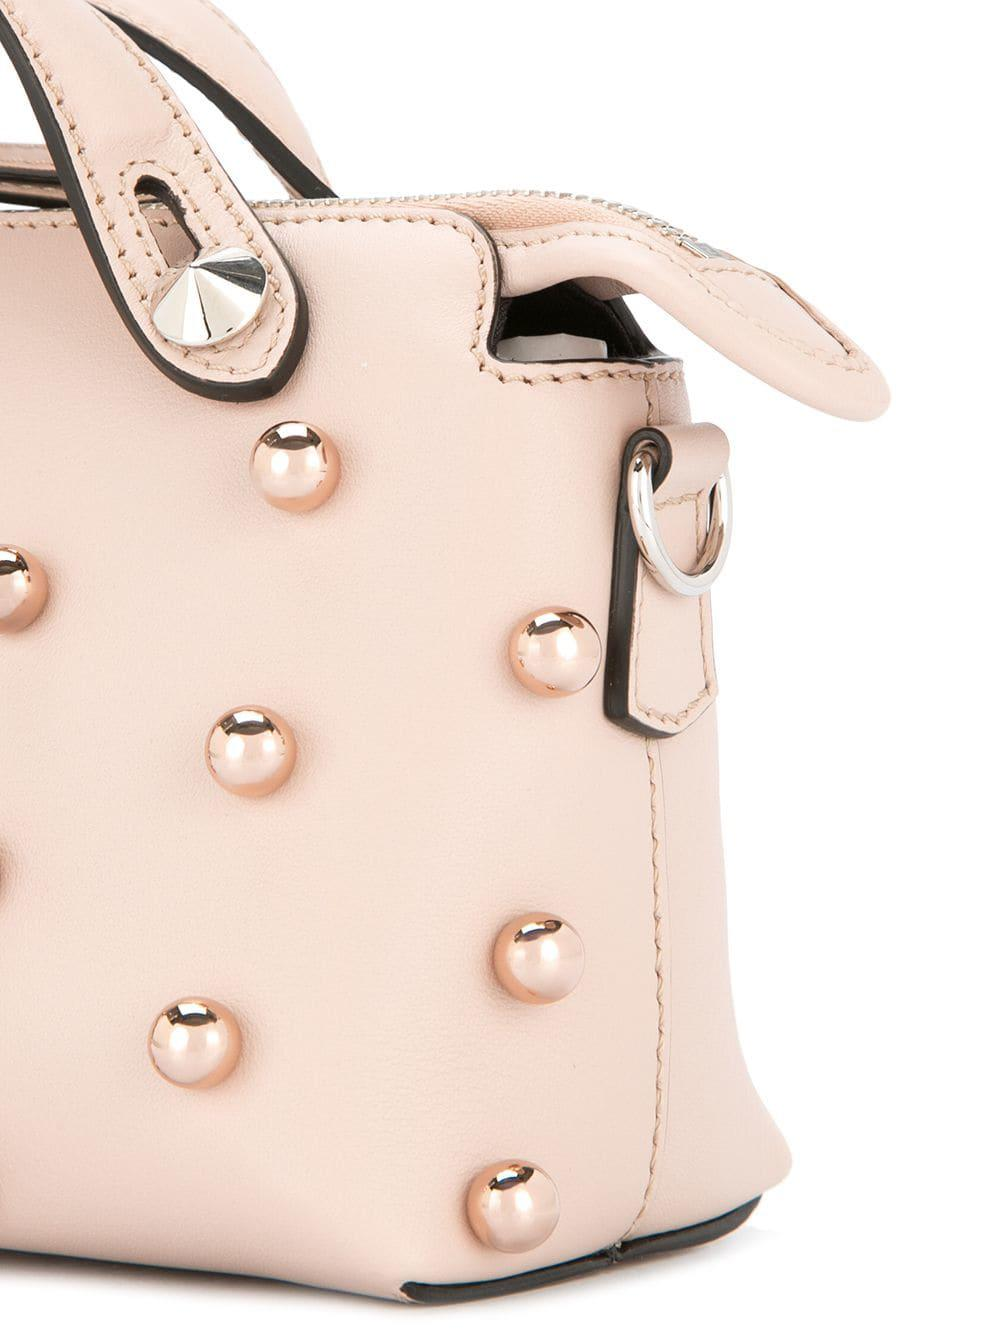 dccf74479d Lyst - Fendi By The Way Bag in Pink